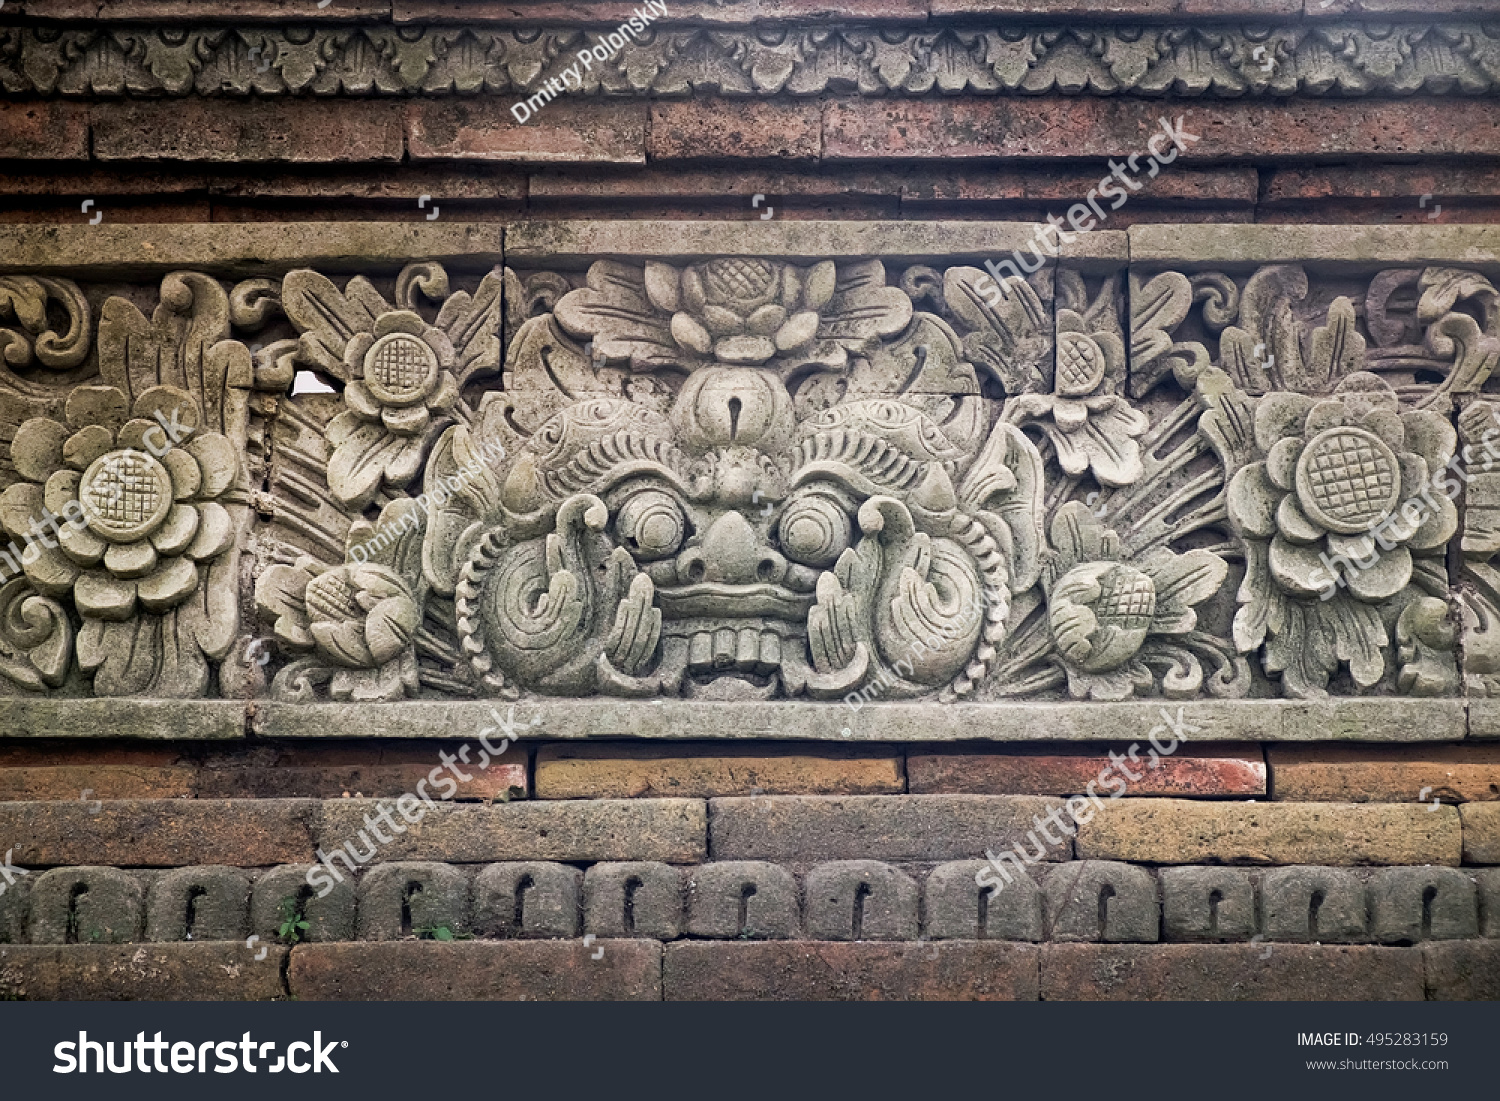 Carved Stone Fence : Carved stone fence traditional hindu temple stock photo